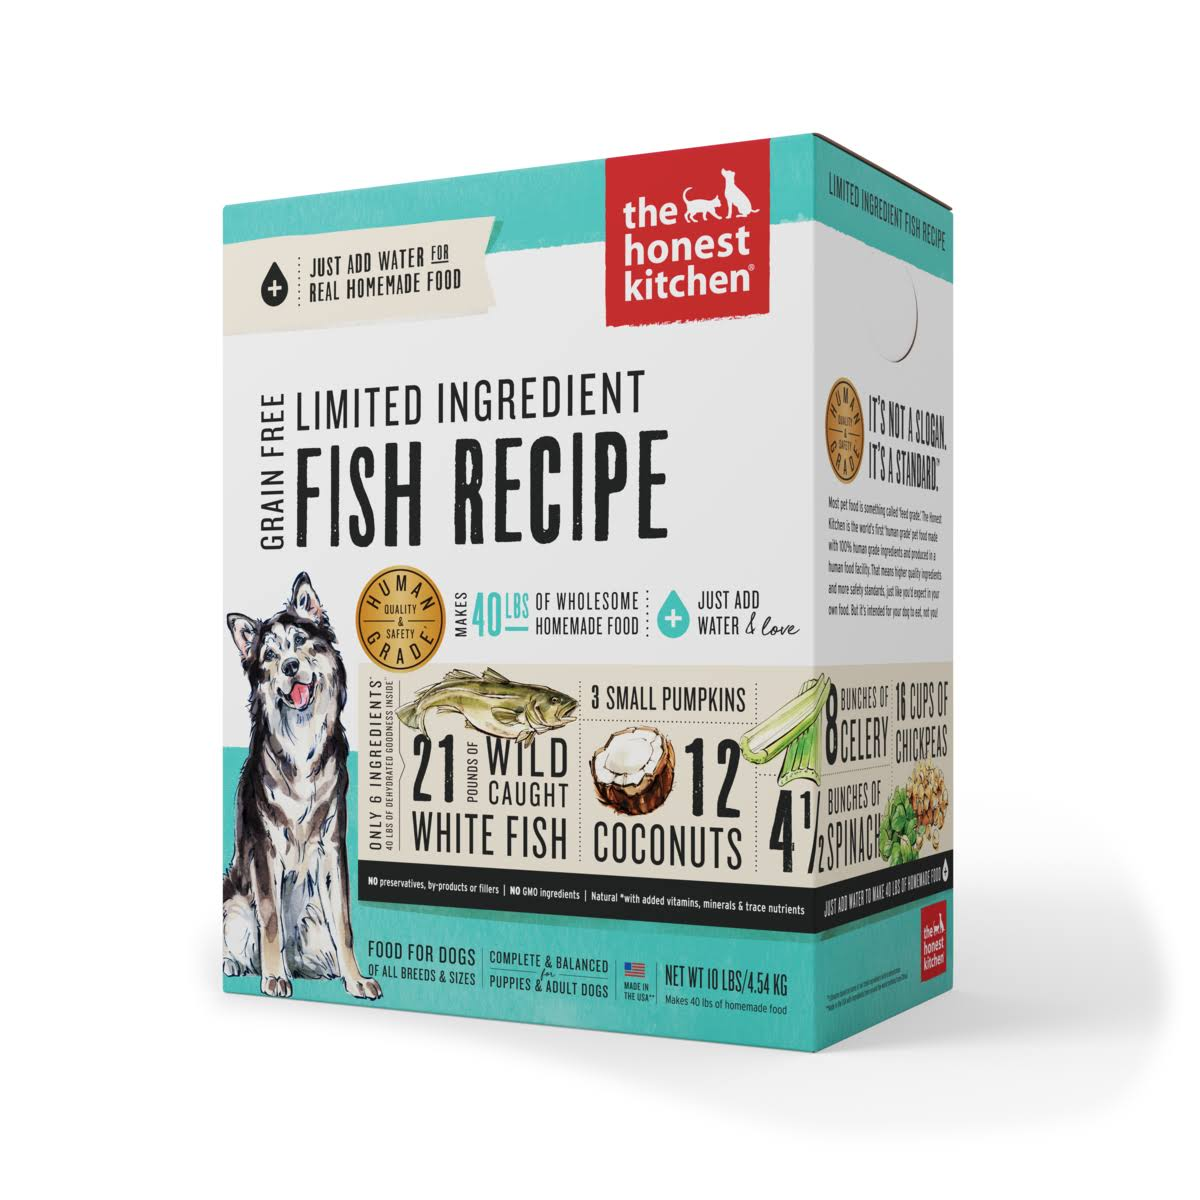 The Honest Kitchen Grain Free Limited Ingredient Fish Recipe Dehydrated Dog Food, 10lb